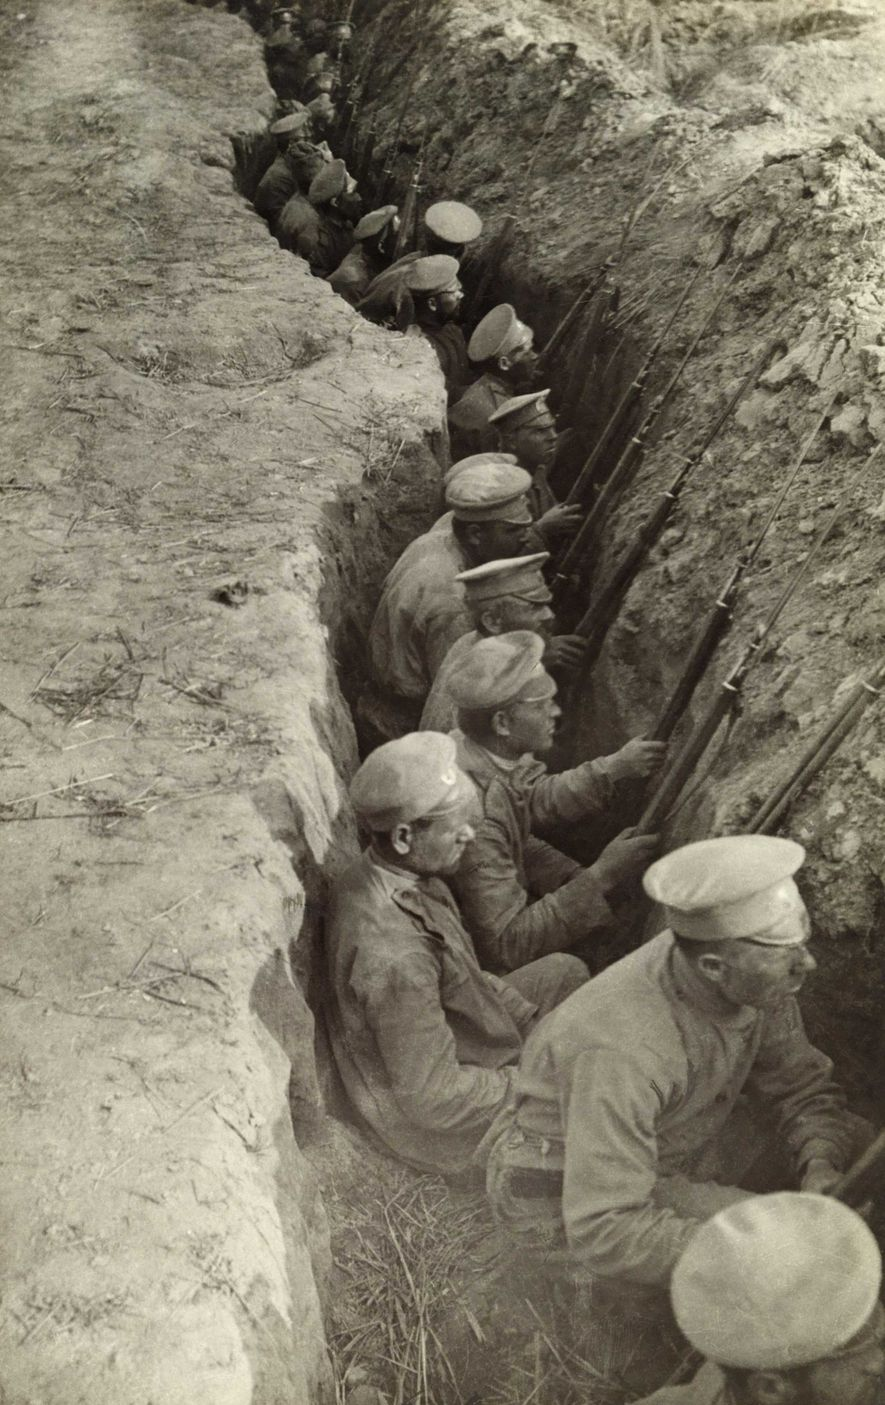 Photographed in 1917, an endless line of Russian soldiers sit patiently in a trench as they anticipate a German attack.